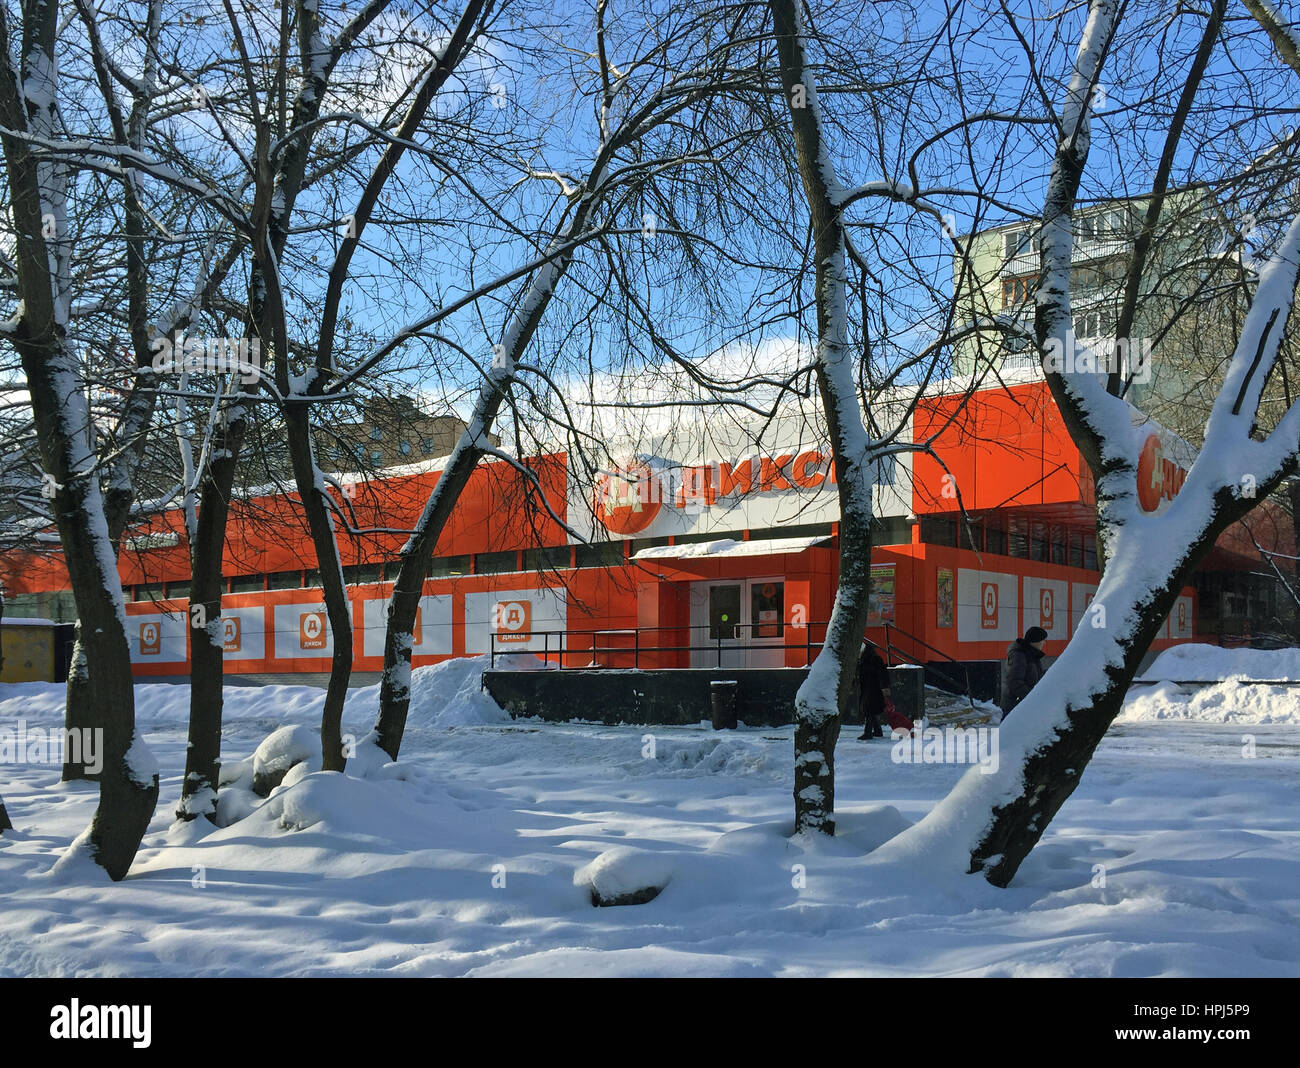 Moscow, Russia - January 25, 2017: Dixi retail store in Babushkinskiy district. - Stock Image